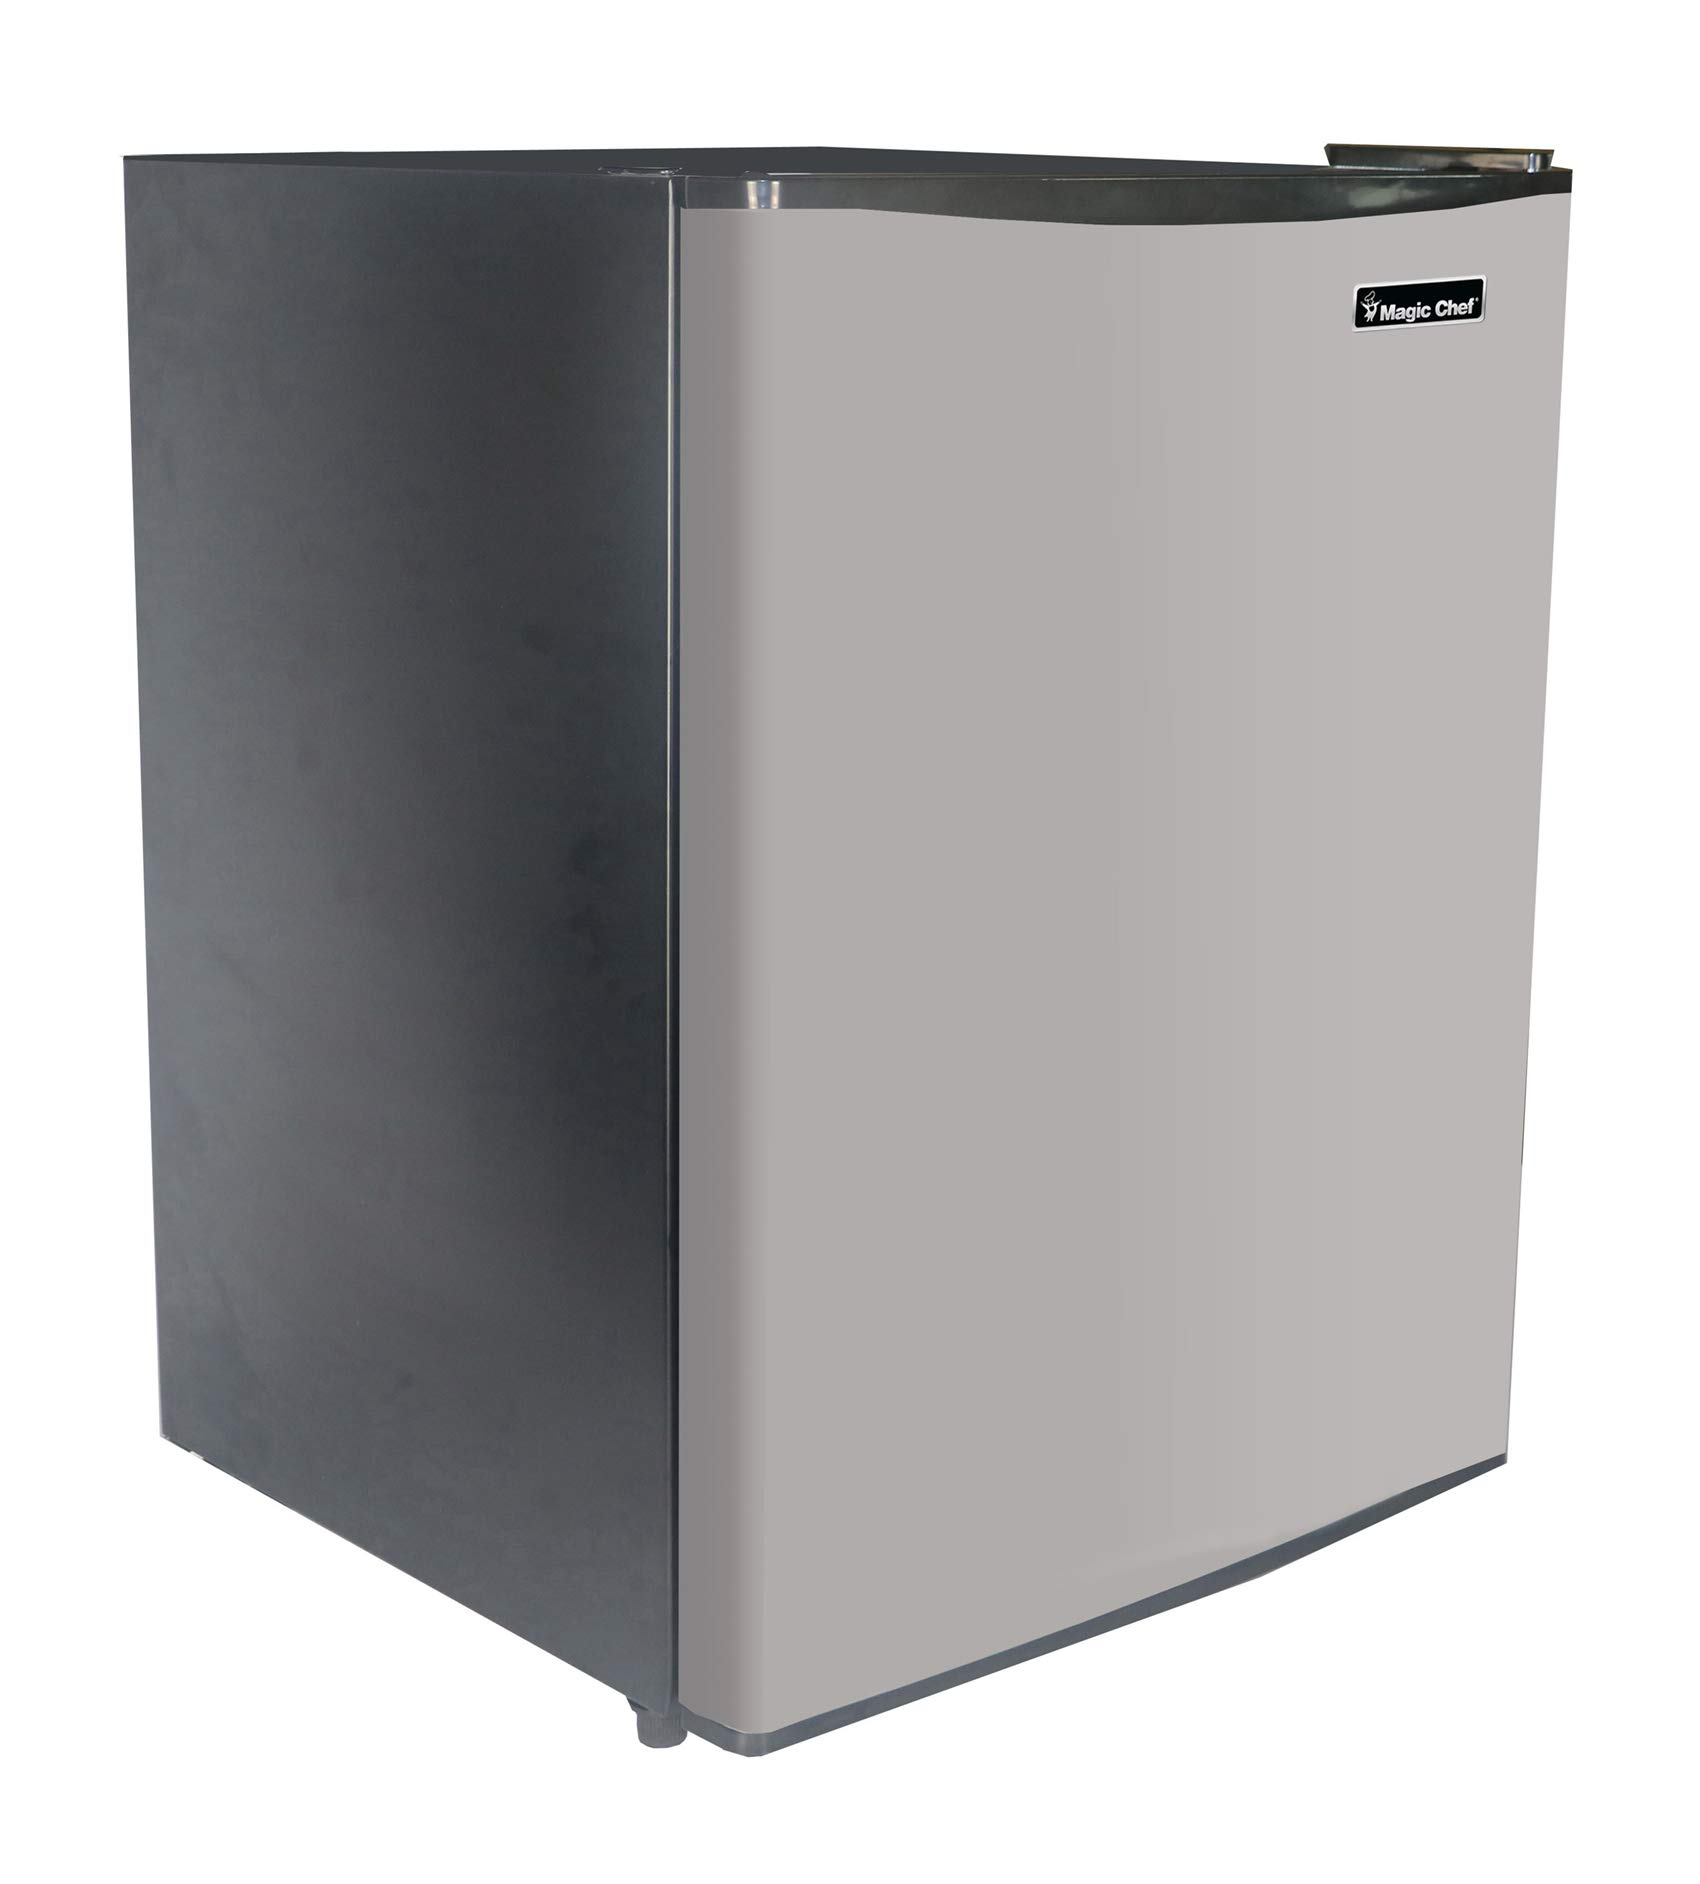 Magic Chef MCAR240SE2 Energy Star Stainless Steel Door 2.4 Cu. Ft. Mini All-Refrigerator by Magic Chef (Image #2)